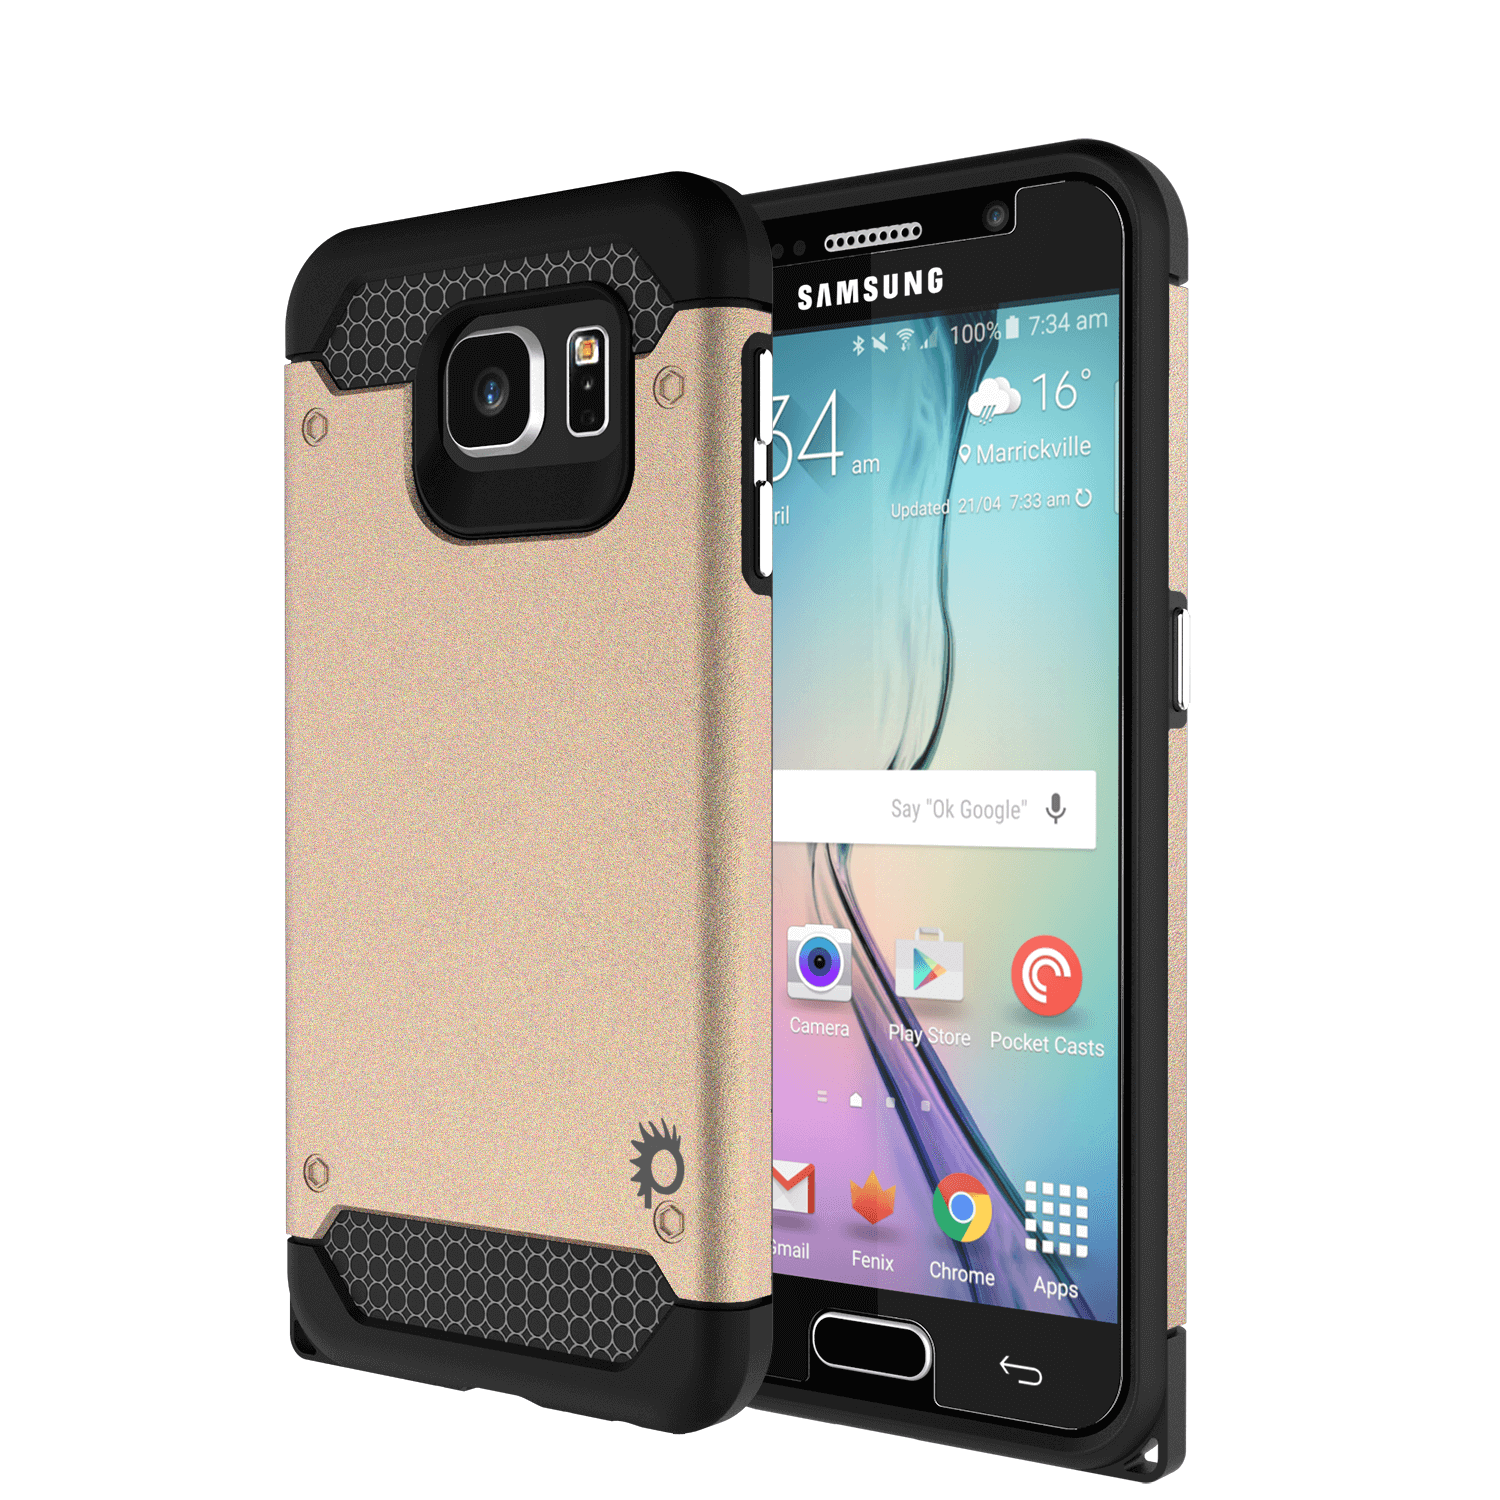 Galaxy s6 Case PunkCase Galactic Gold Series Slim Armor Soft Cover Case w/ Tempered Glass